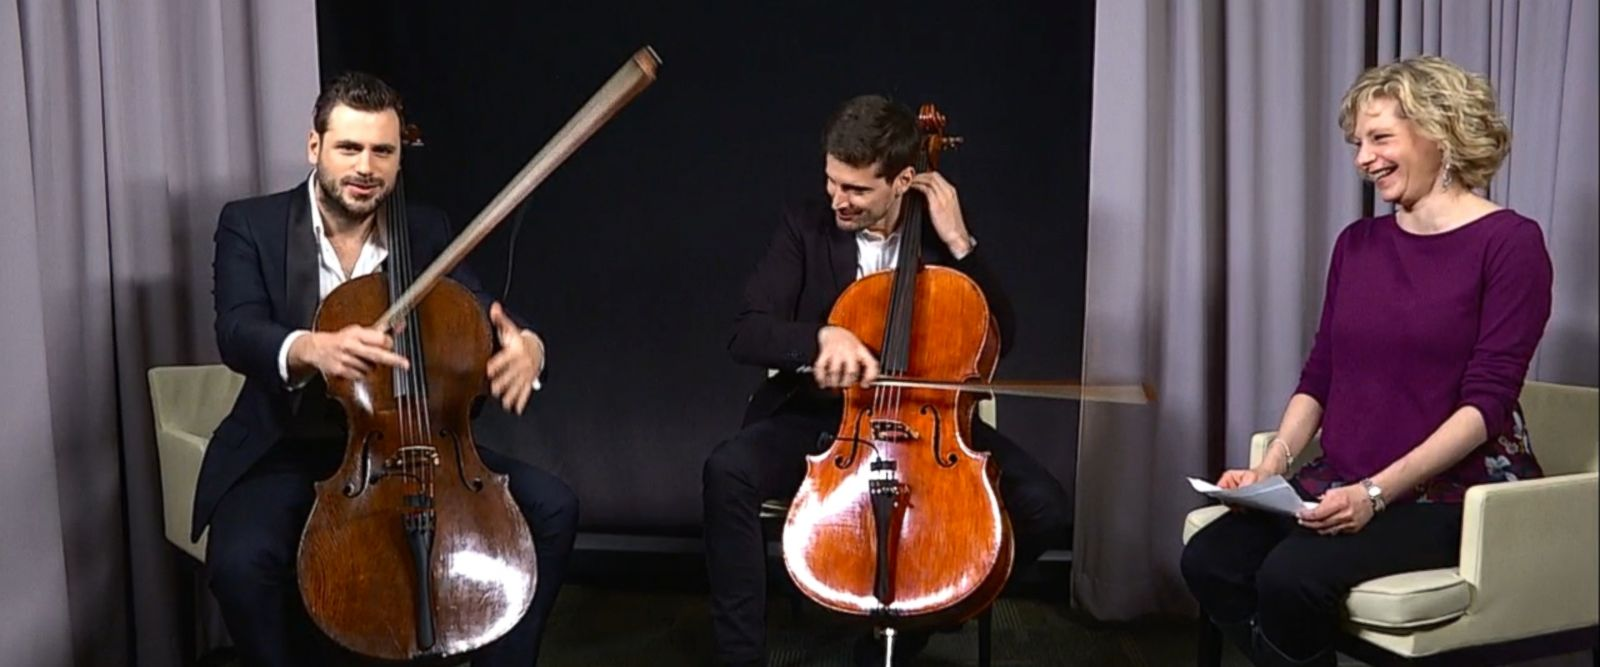 VIDEO: YouTube sensations 2CELLOS on their new album, 'Score'